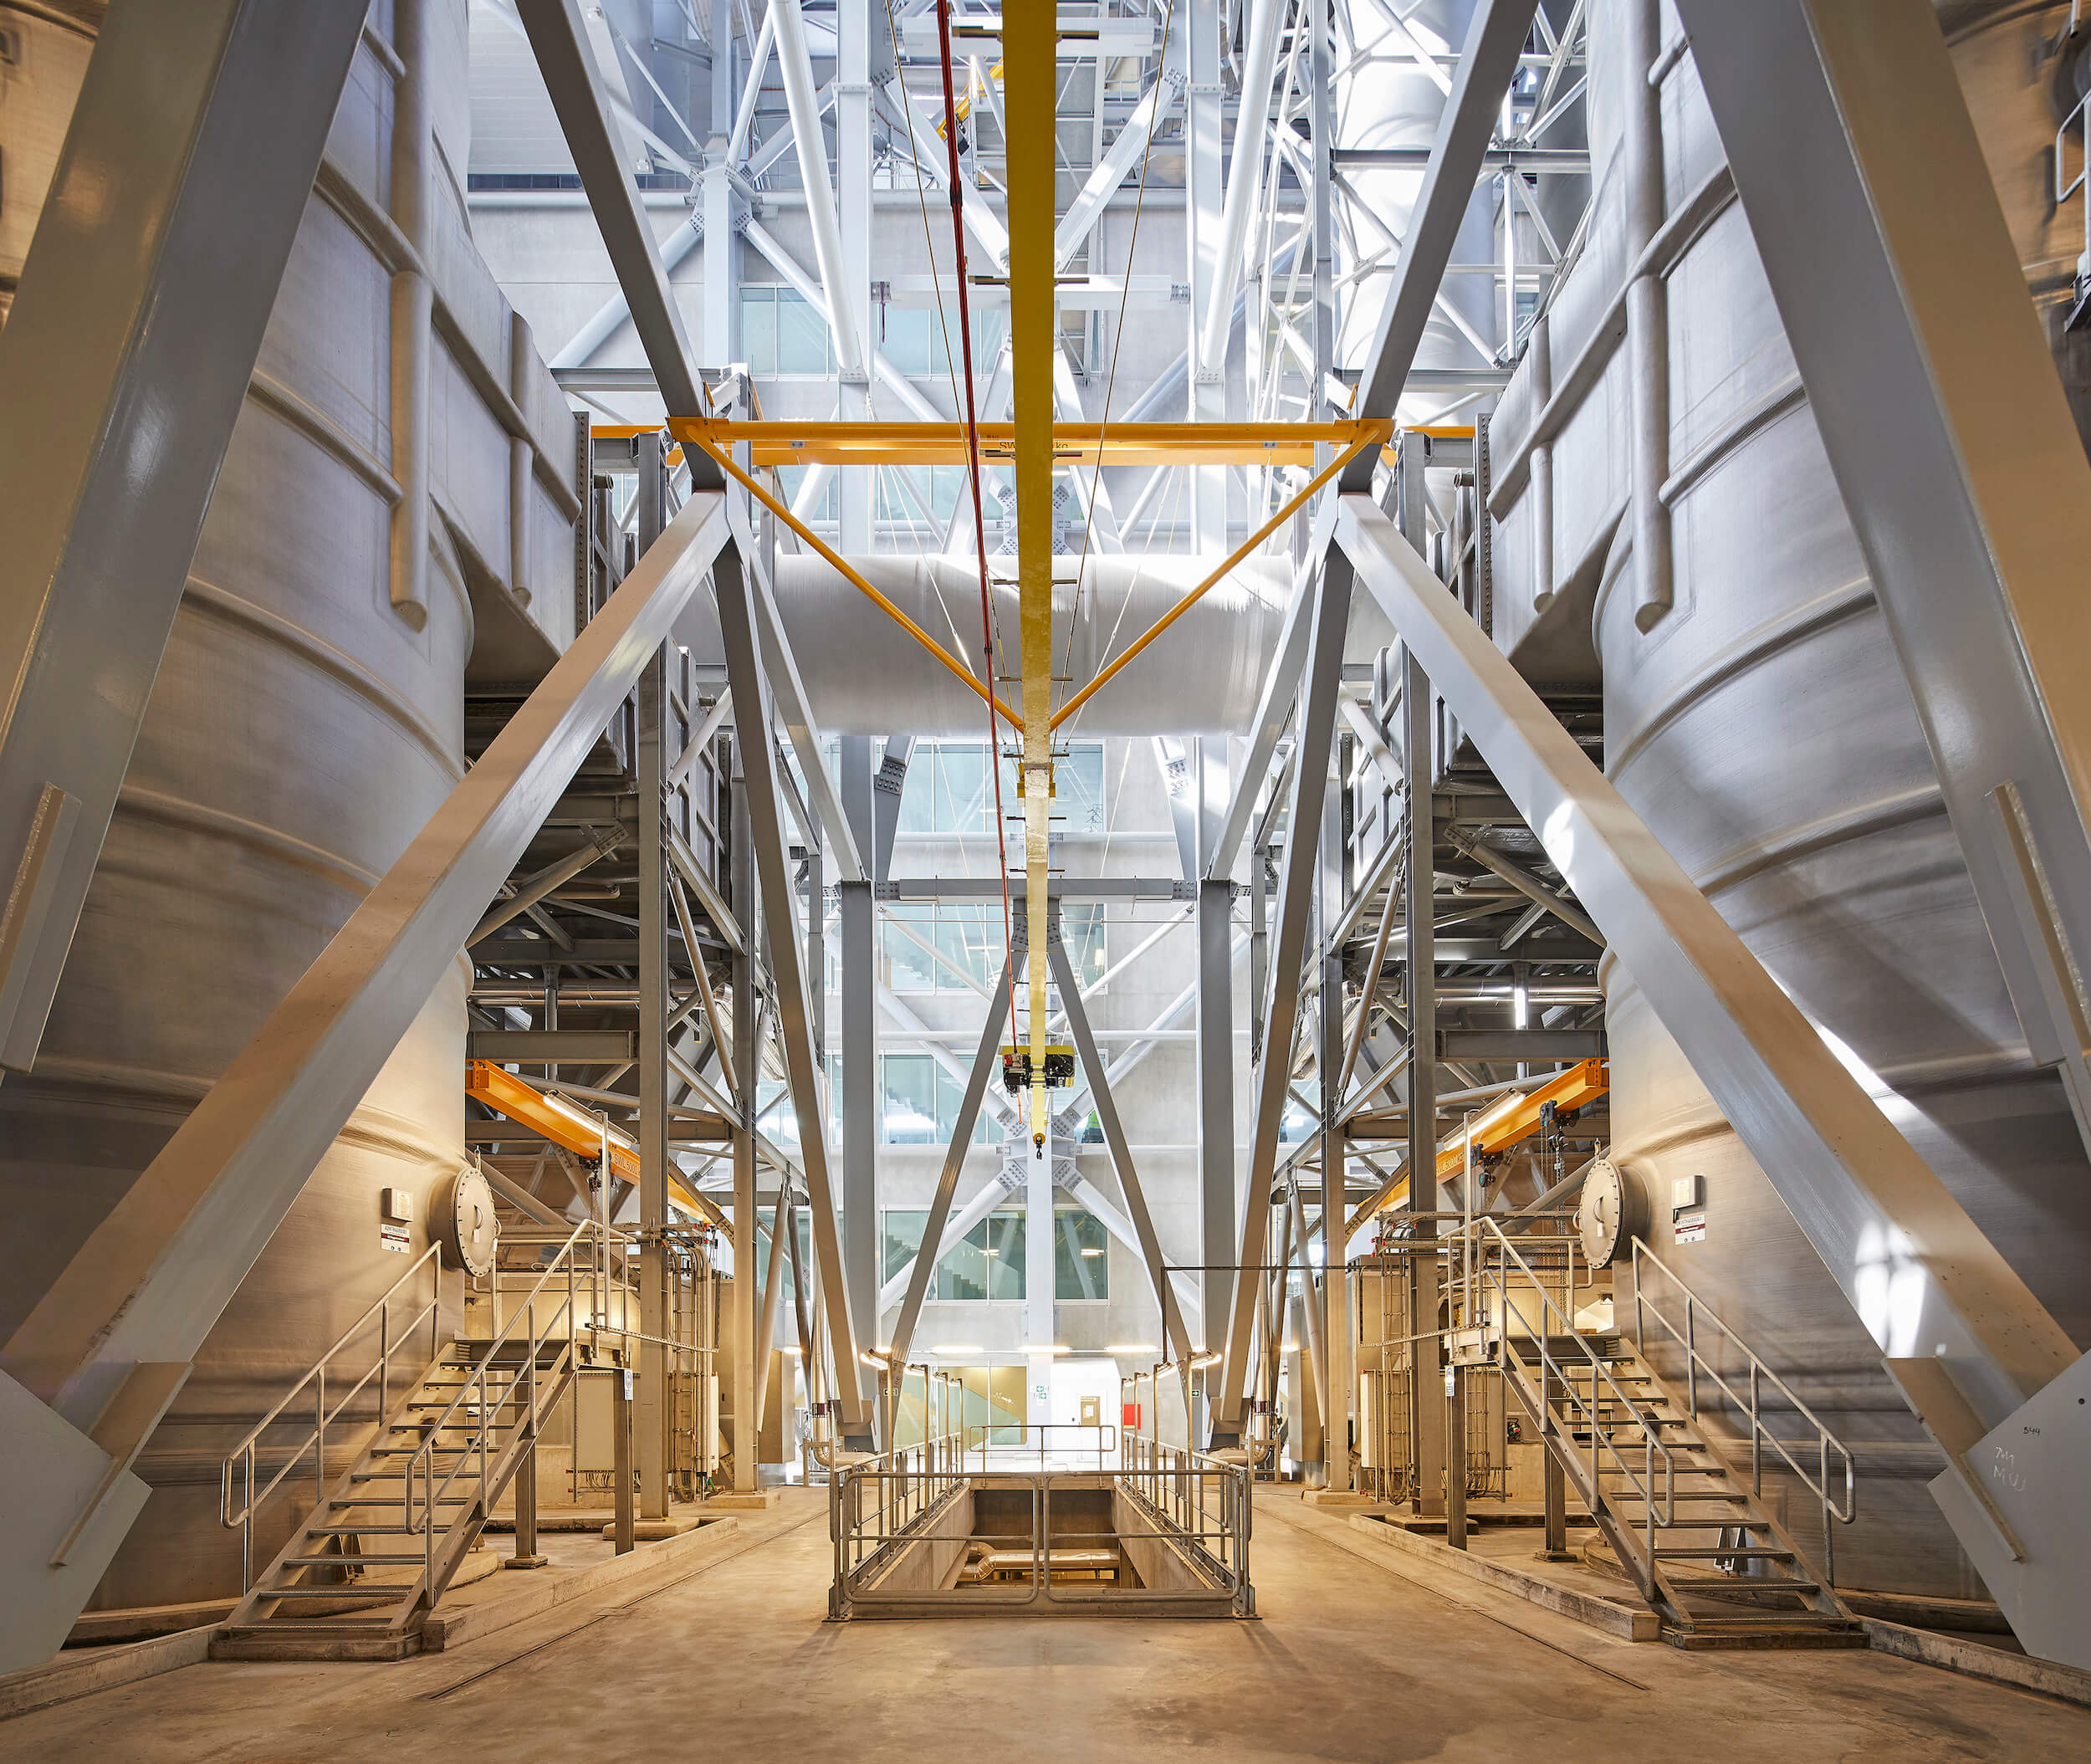 inside of a waste-to-energy power plant